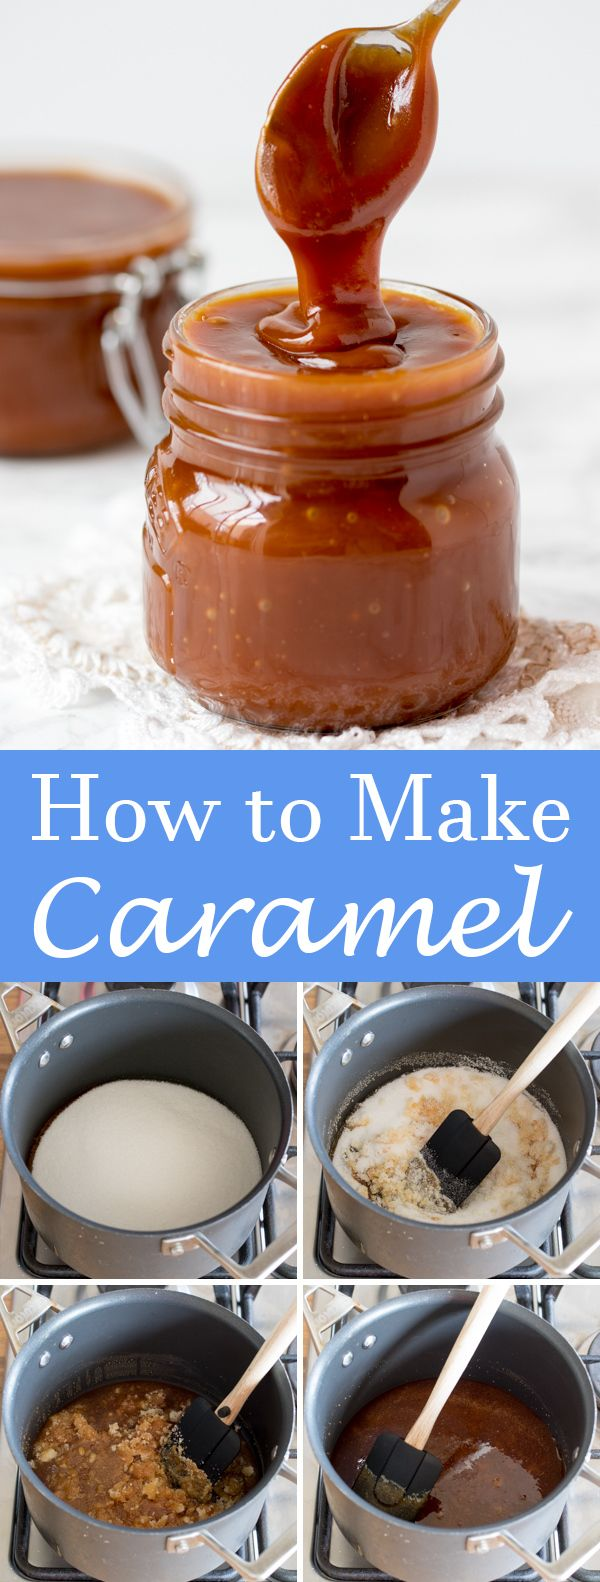 Easy steps to make caramel sauce at home.